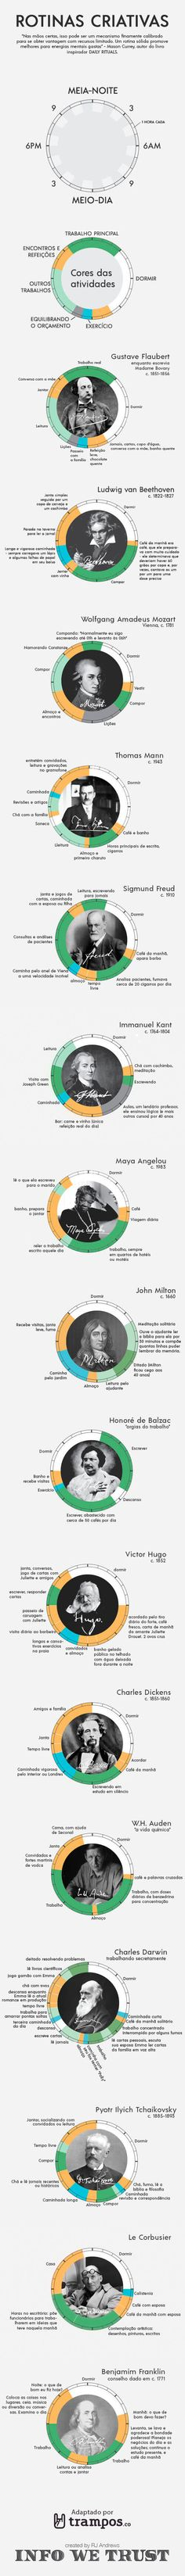 Infográfico: a rotina dos criativos mais famosos Alta Performance, Study Tips, Internet Marketing, Personal Development, Productivity, Digital Marketing, Psychology, Knowledge, Mindfulness